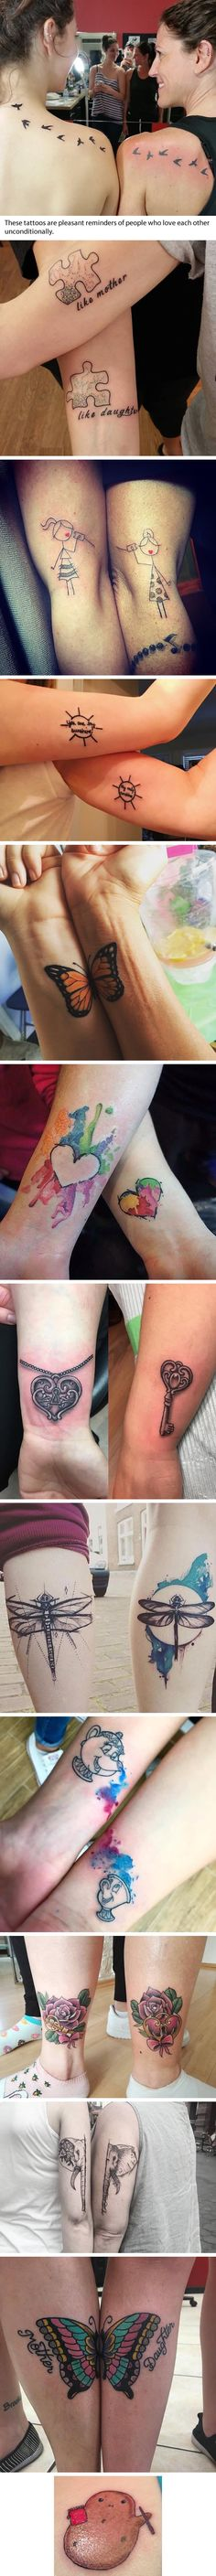 Mother-Daughter Tattoos Celebrating Their Special Life-Long Bond . Browse new photos about Mother-Daughter Tattoos Celebrating Their Special Life-Long Bond . Wolf Tattoos, Finger Tattoos, Body Art Tattoos, Belly Tattoos, Mother And Daughter Tatoos, Tattoos For Daughters, Mother Daughters, Mother Daughter Infinity Tattoos, Diy Tattoo